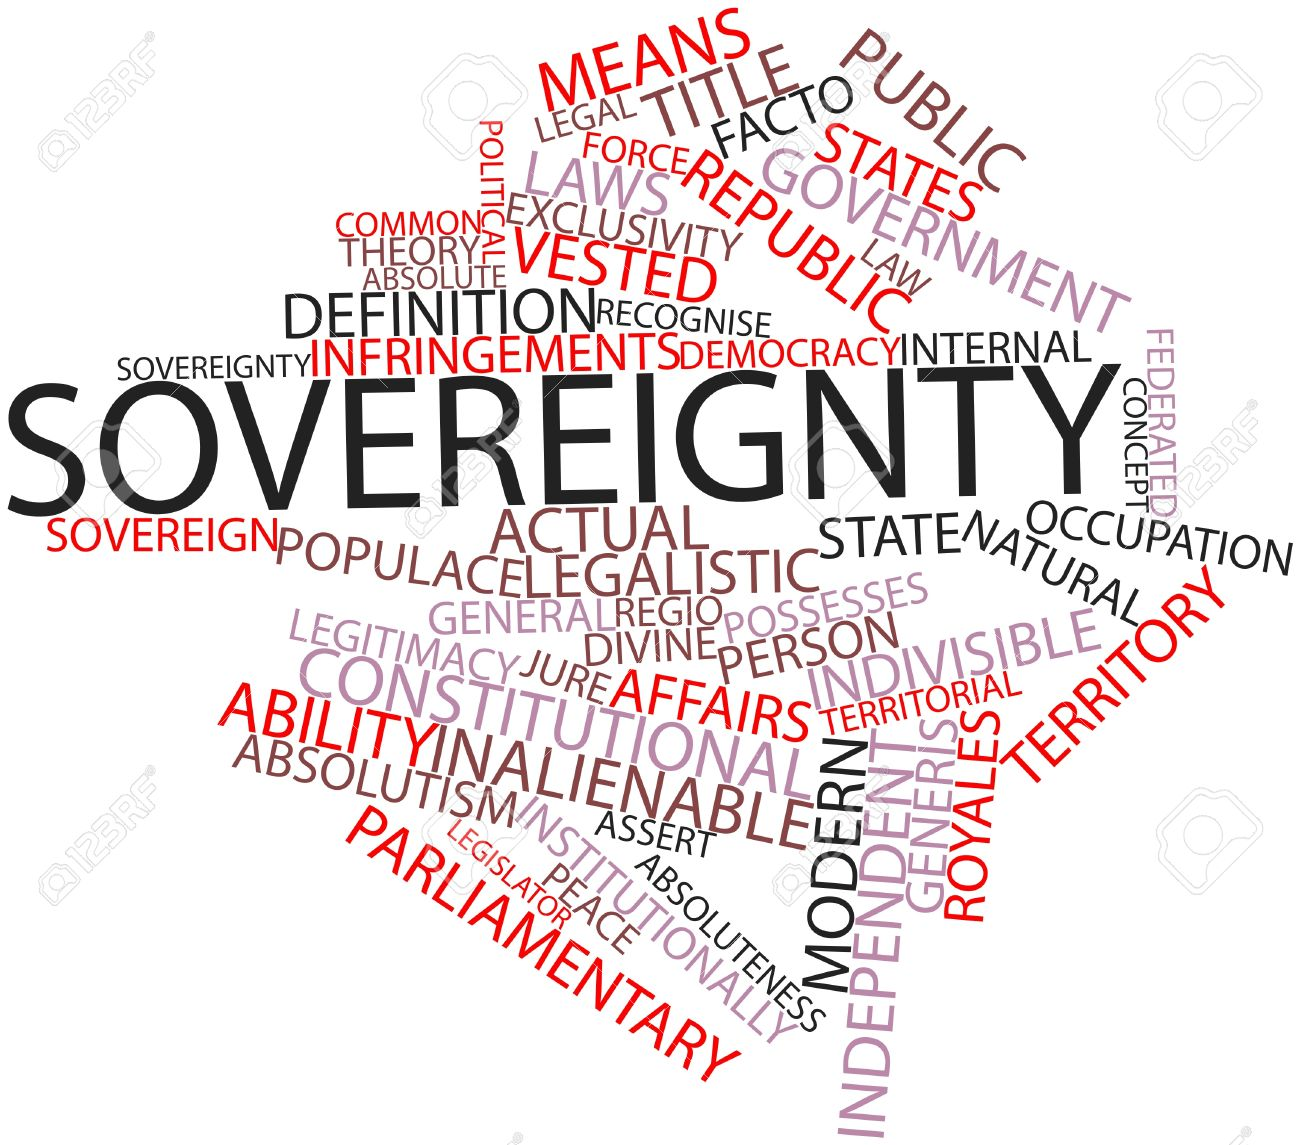 importance of sovereignty The pros and cons of popular sovereignty show that if it is carefully managed so that everyone can have a voice, there are certain benefits which can be achieved the negative components should be monitored consistently, but the chance to make one's own choices is a chance that most people don't and shouldn't ignore.